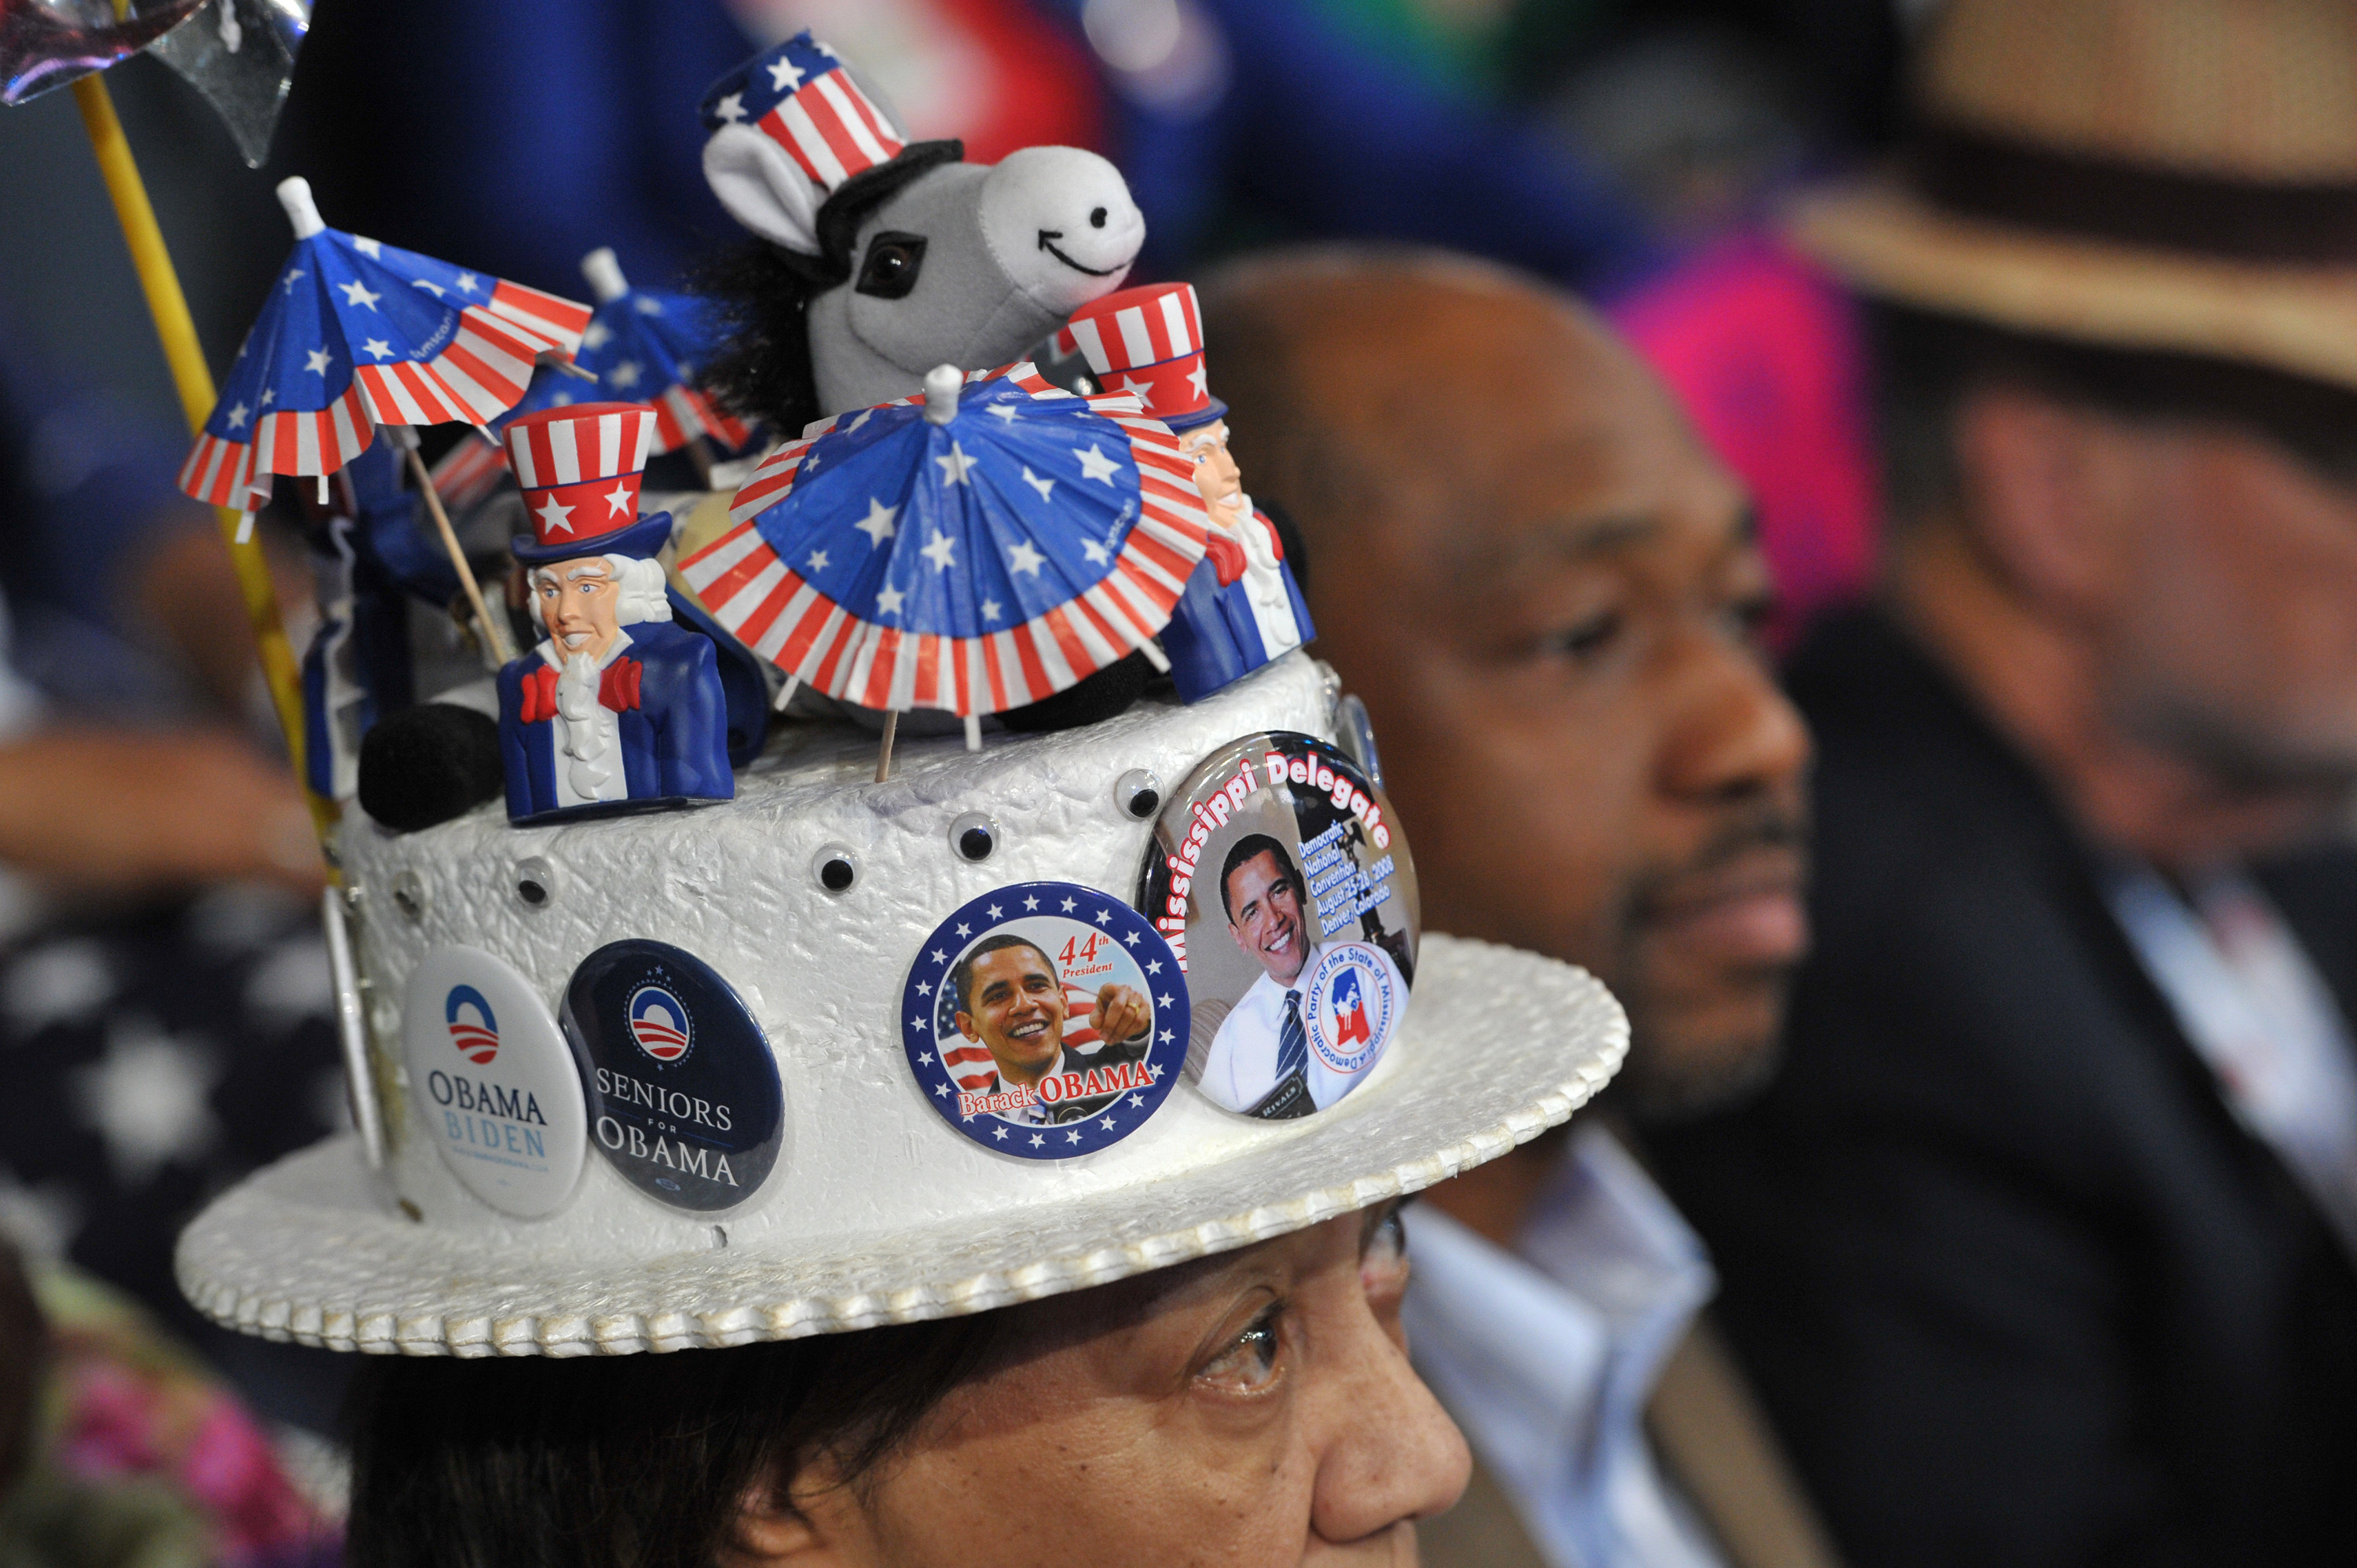 A woman with obama buttons and a small donkey on her hat